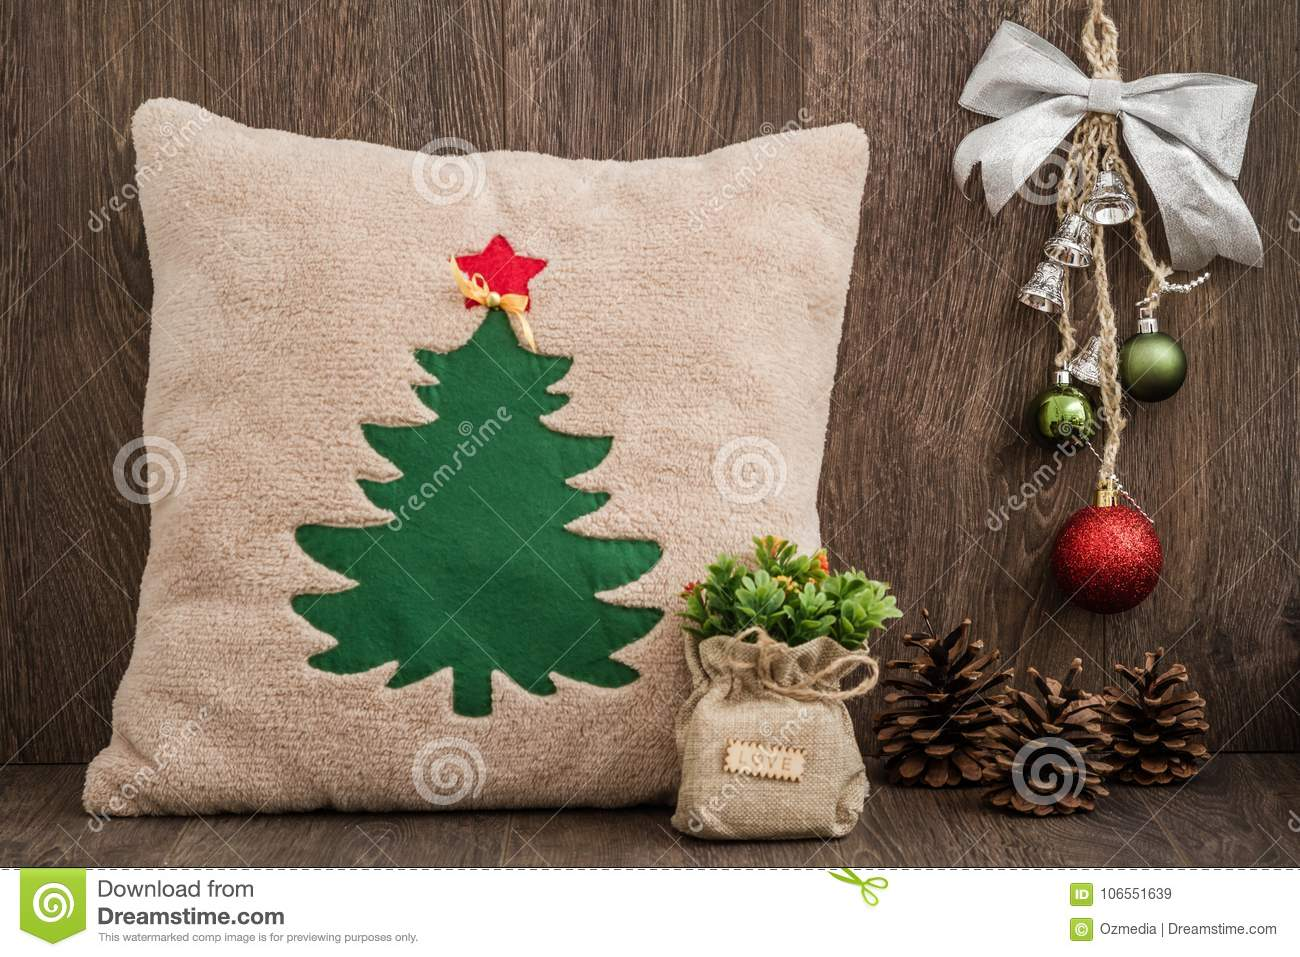 download handmade pillow with christmas tree pattern on wooden backgroun stock image image of decorative